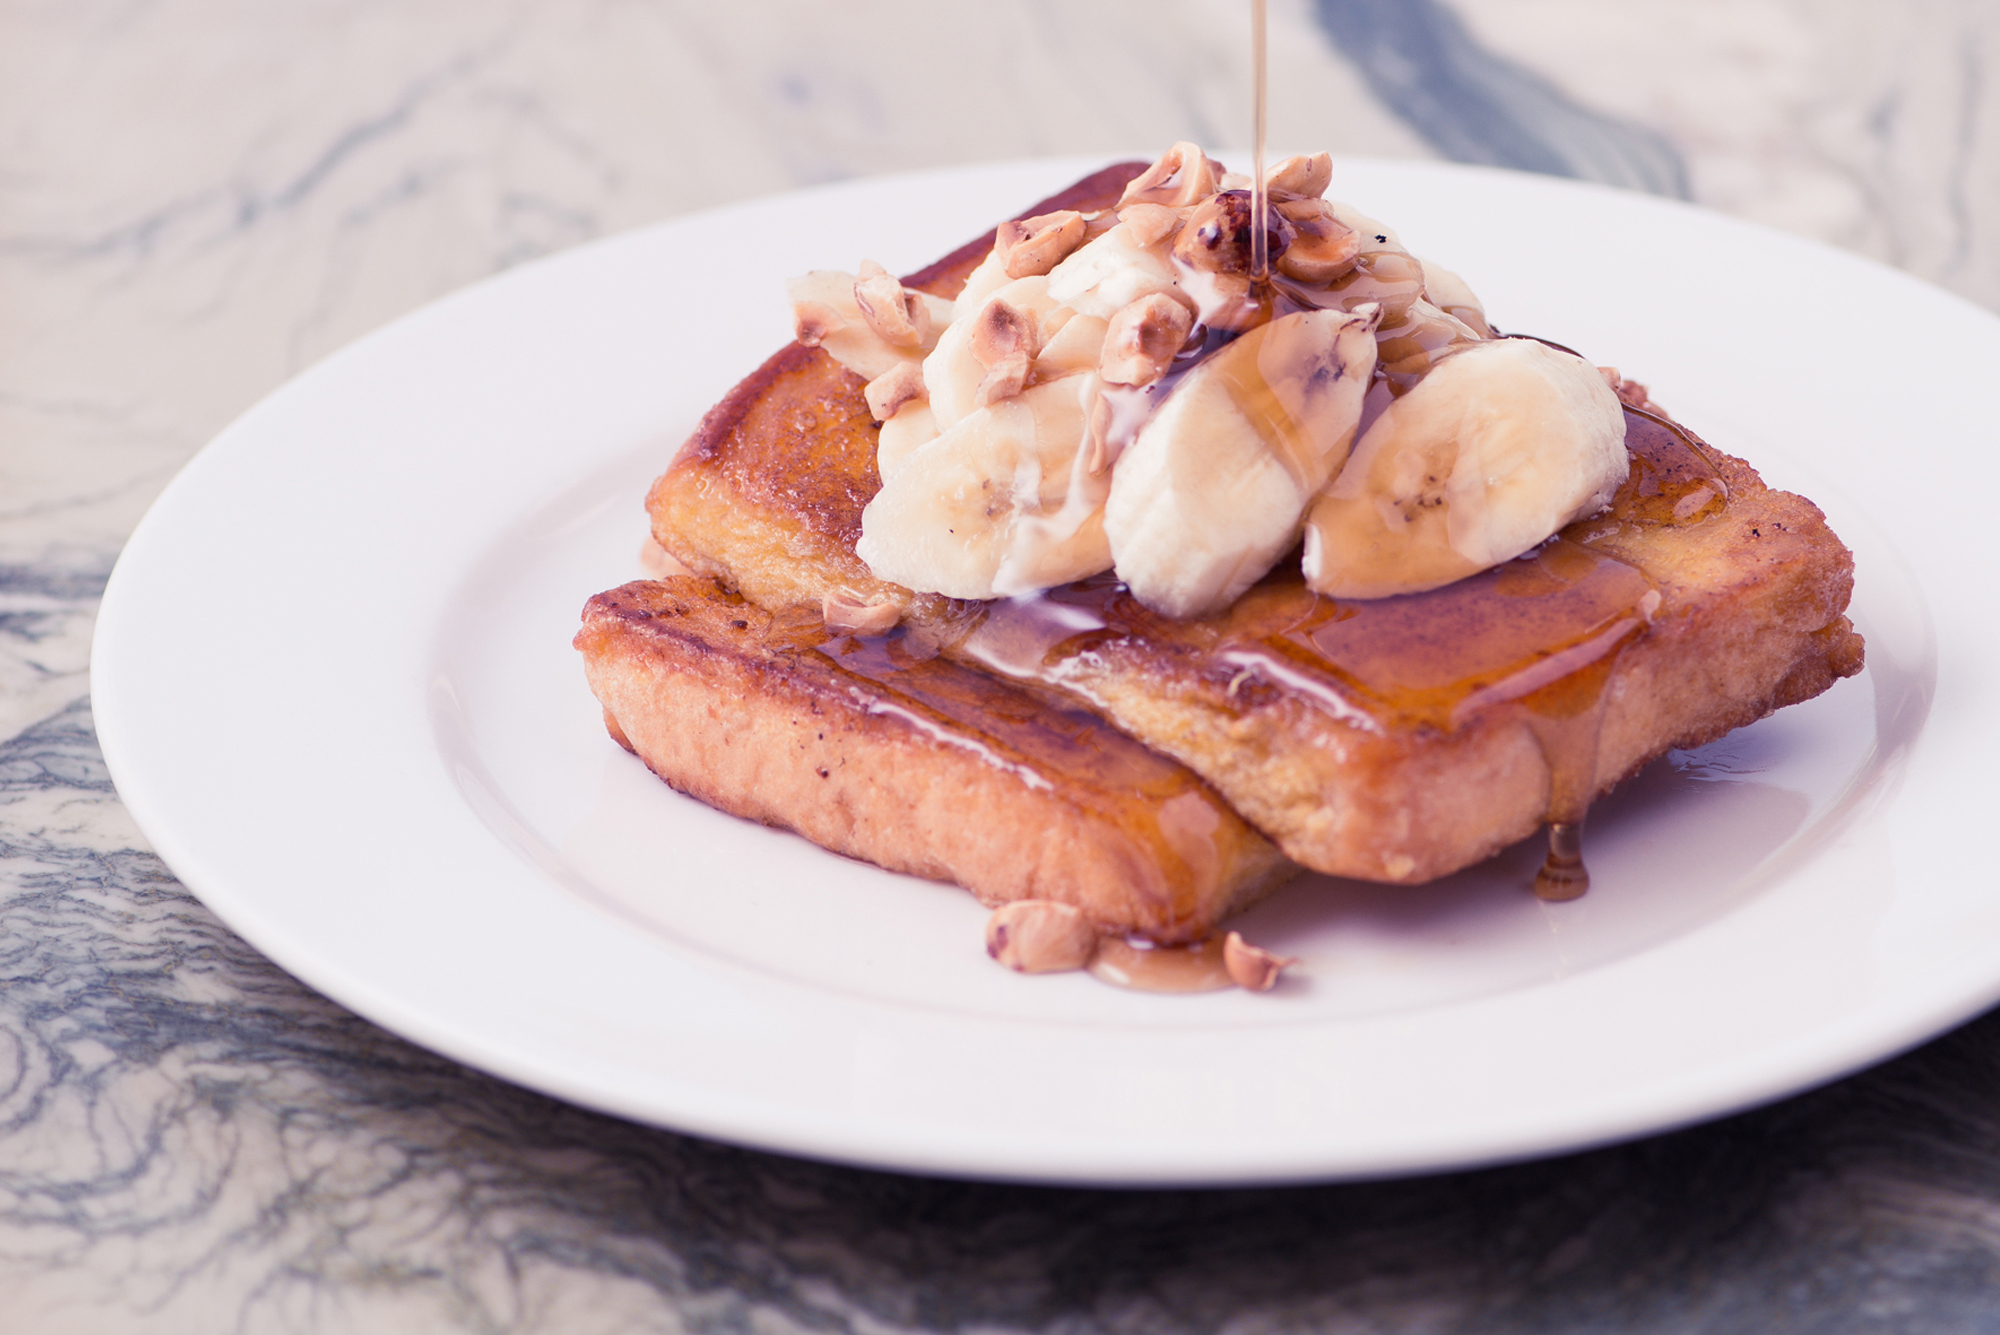 Ron Wan: Art Direction, Graphic Design, Classified Restaurant French toast with banana, hazelnut, and syrup